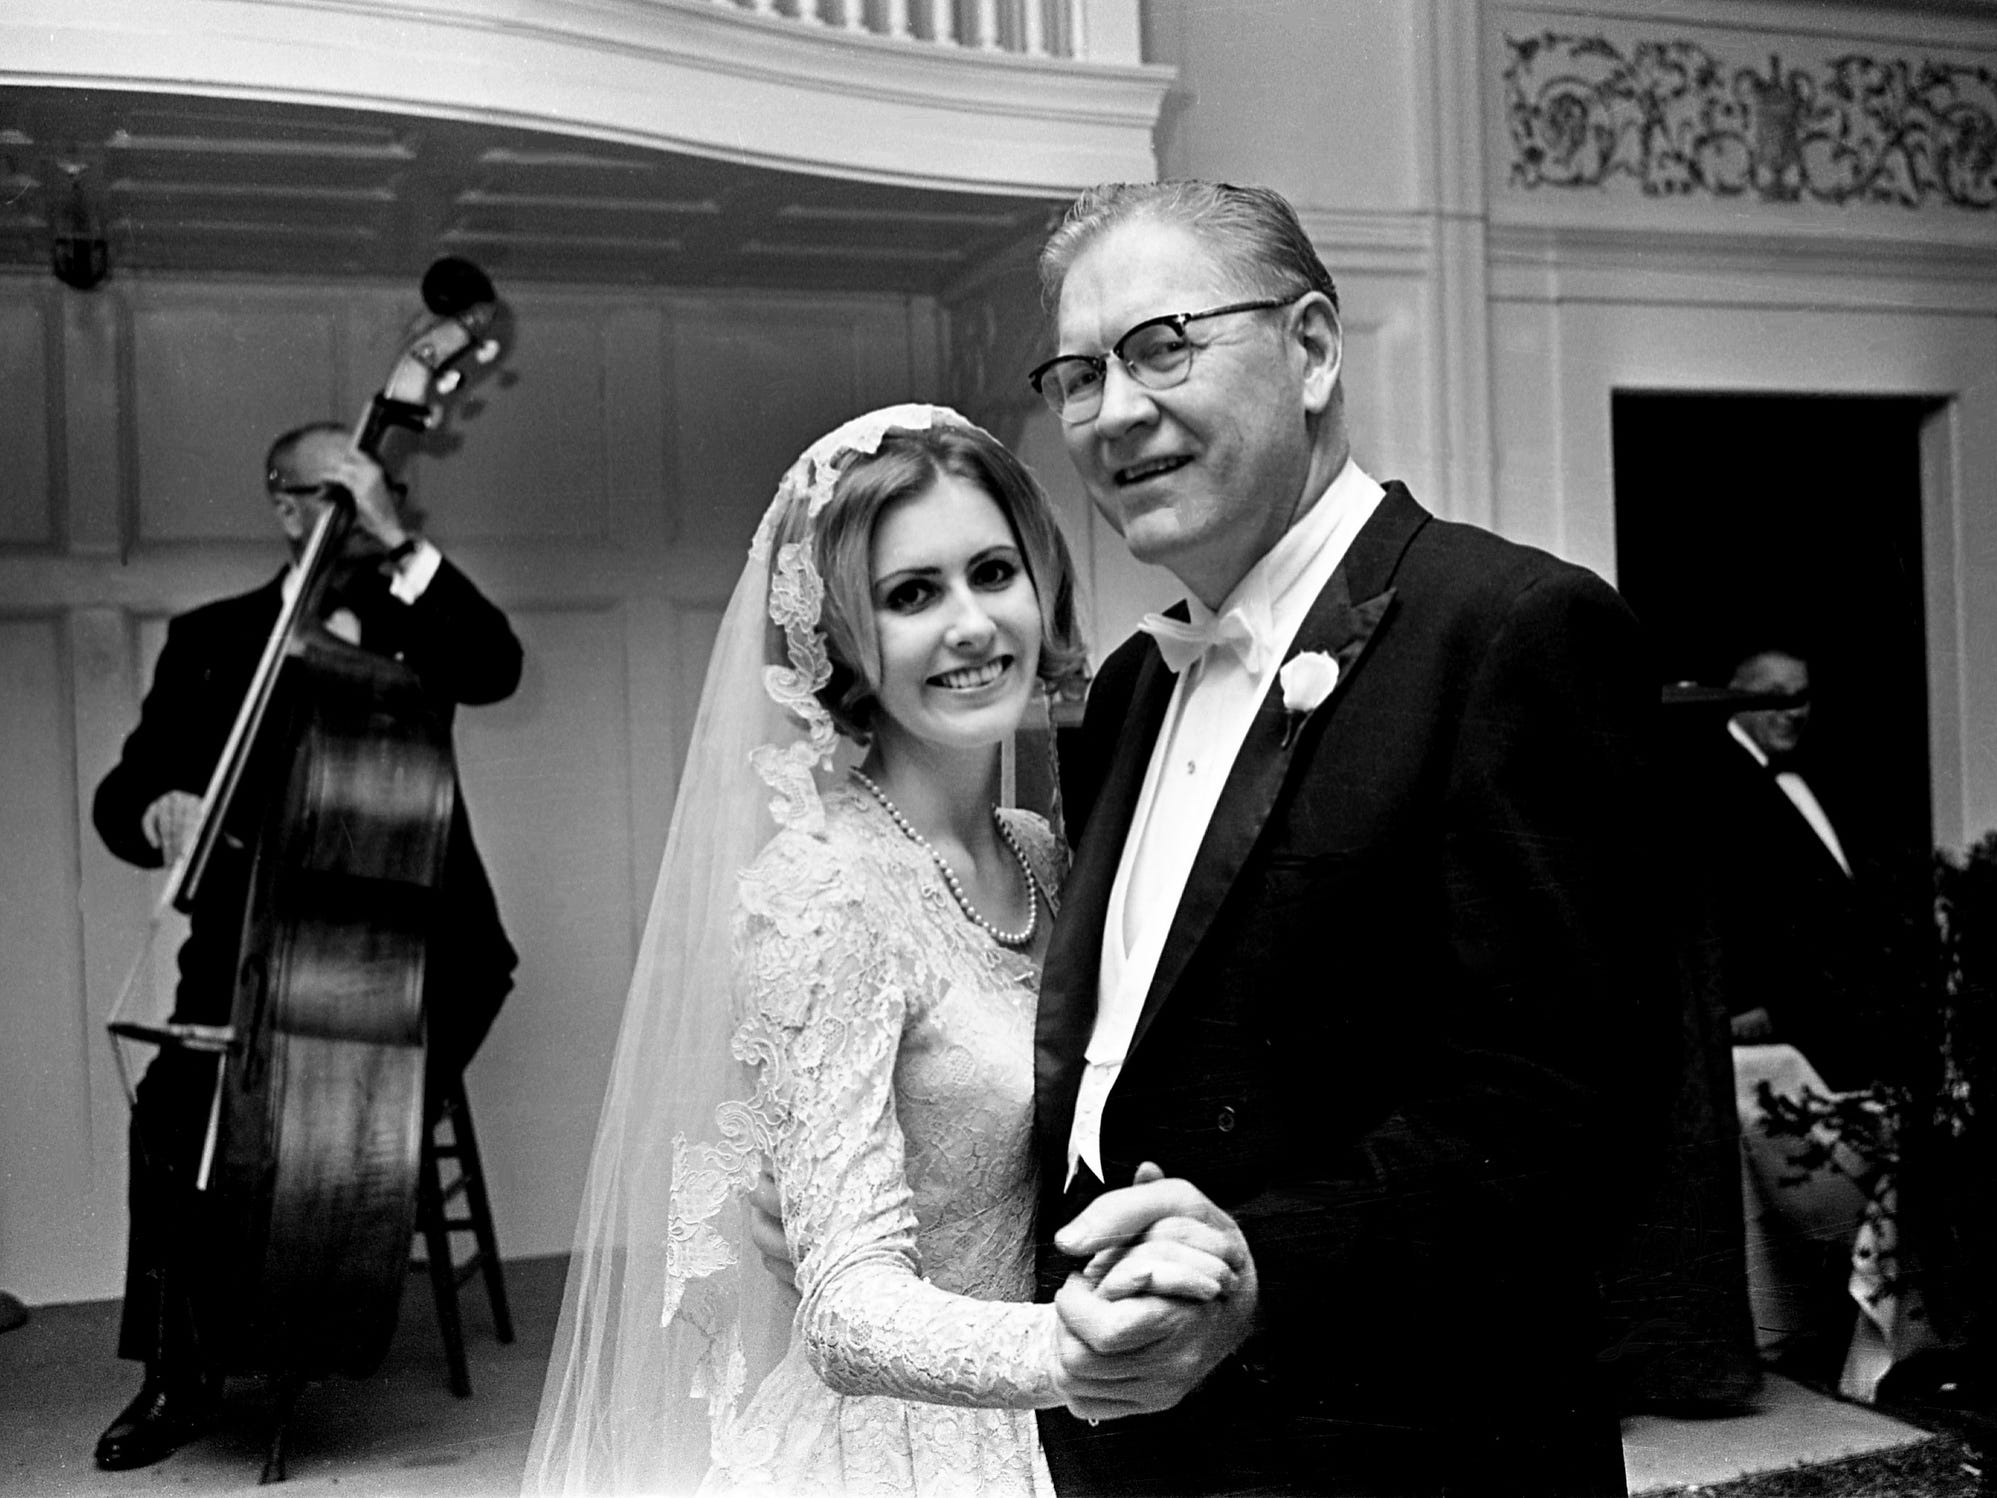 Dr. Thomas Fearn Frist, right, has the first dance with his daughter, the former Mary Louise Frist, to the music of Red Murf and his trio after her marriage to Henry Lee Barfield II during the reception at Belle Meade Country Club on Jan. 31, 1968.